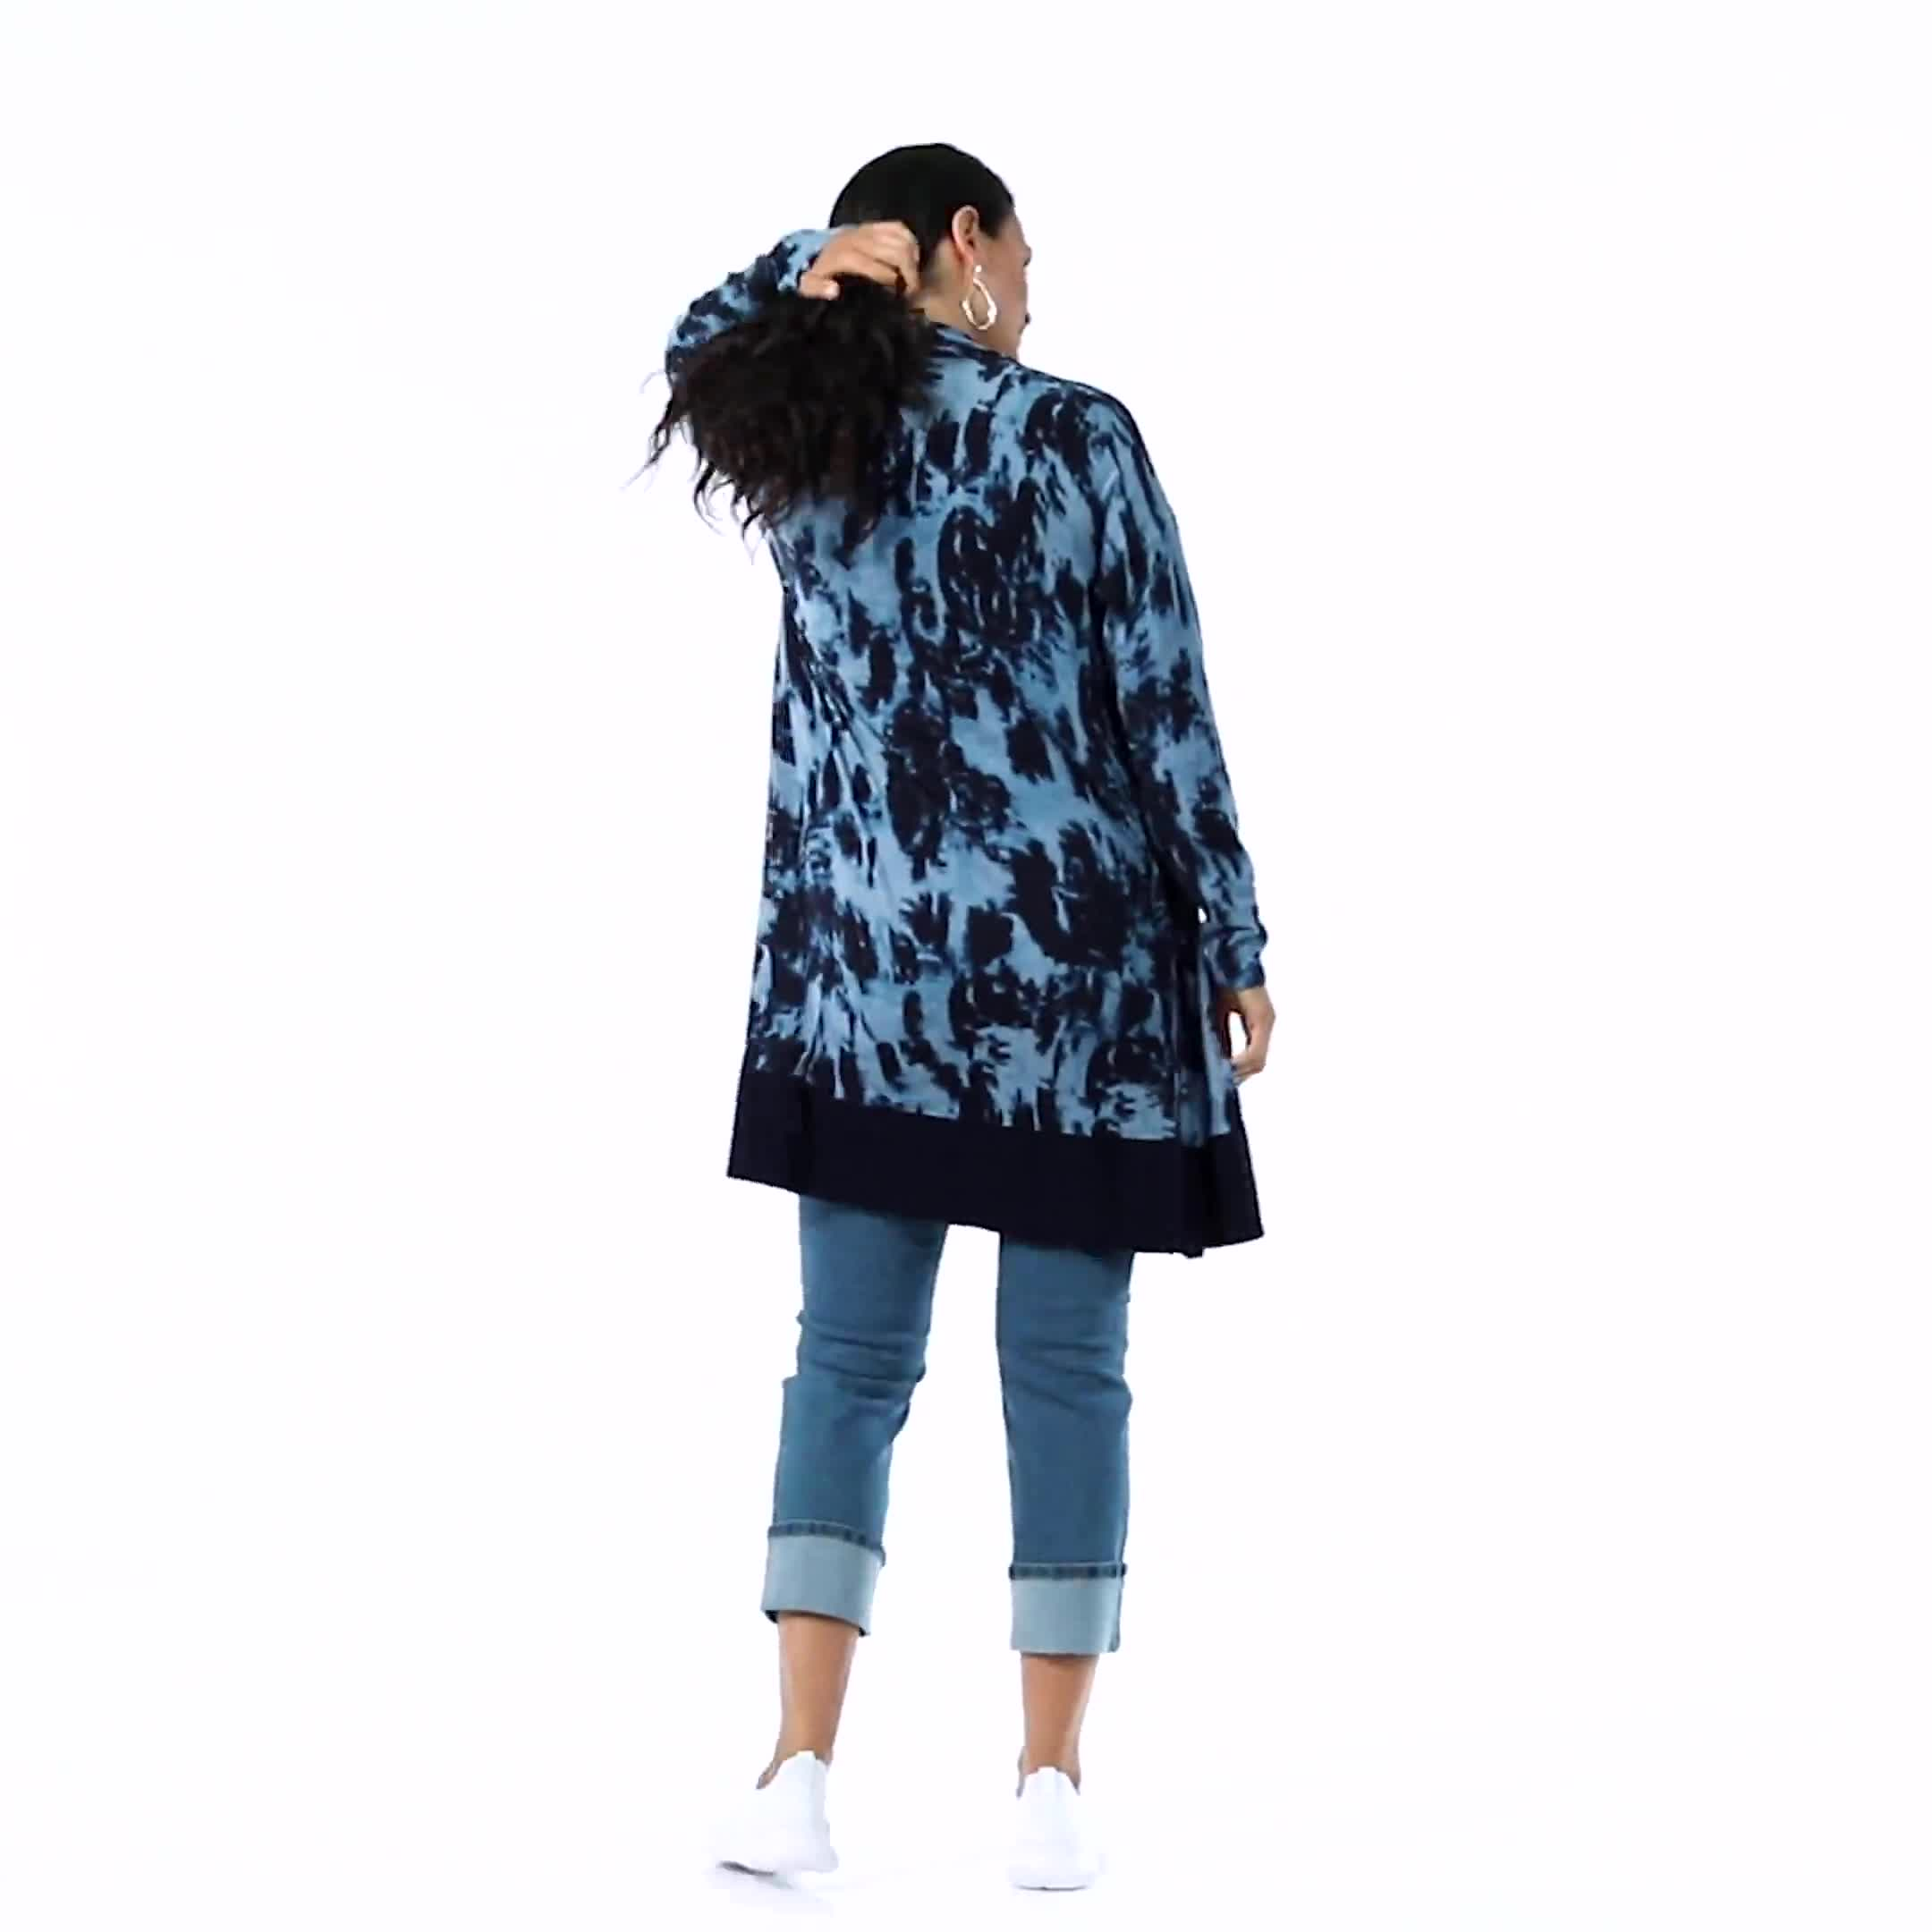 Roz & Ali Tie Dye Duster - Misses - Video